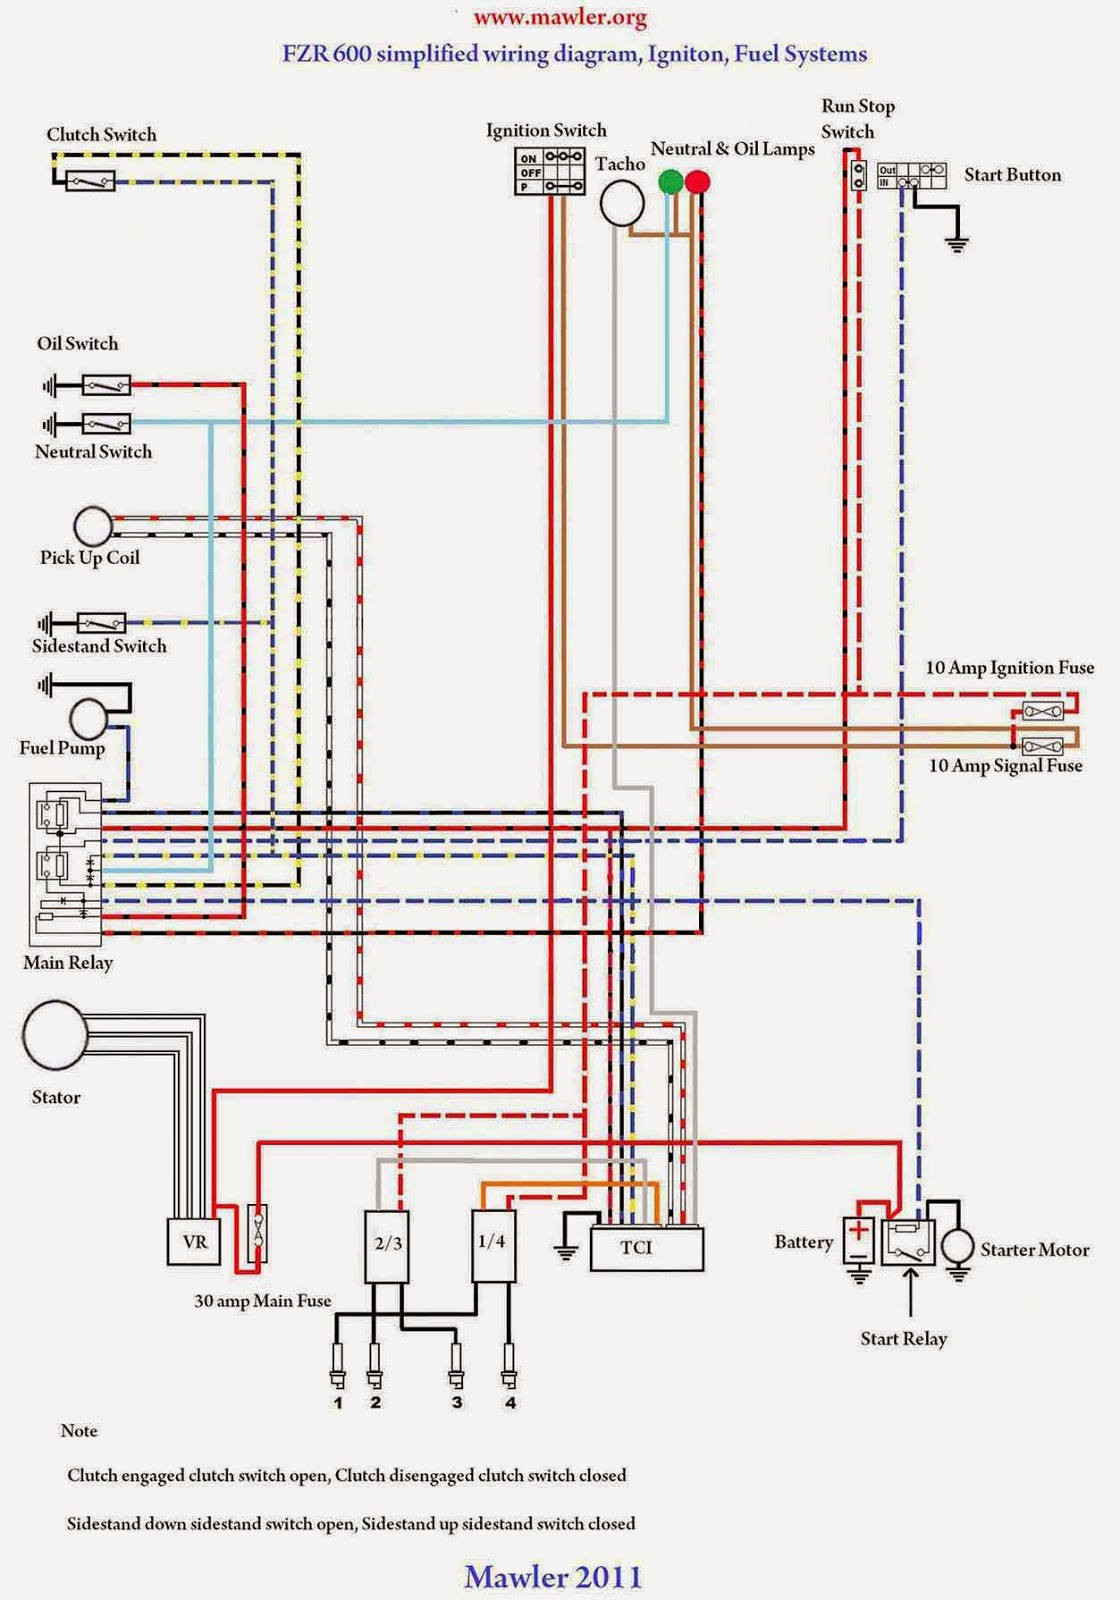 Great Condition Wiring Diagram